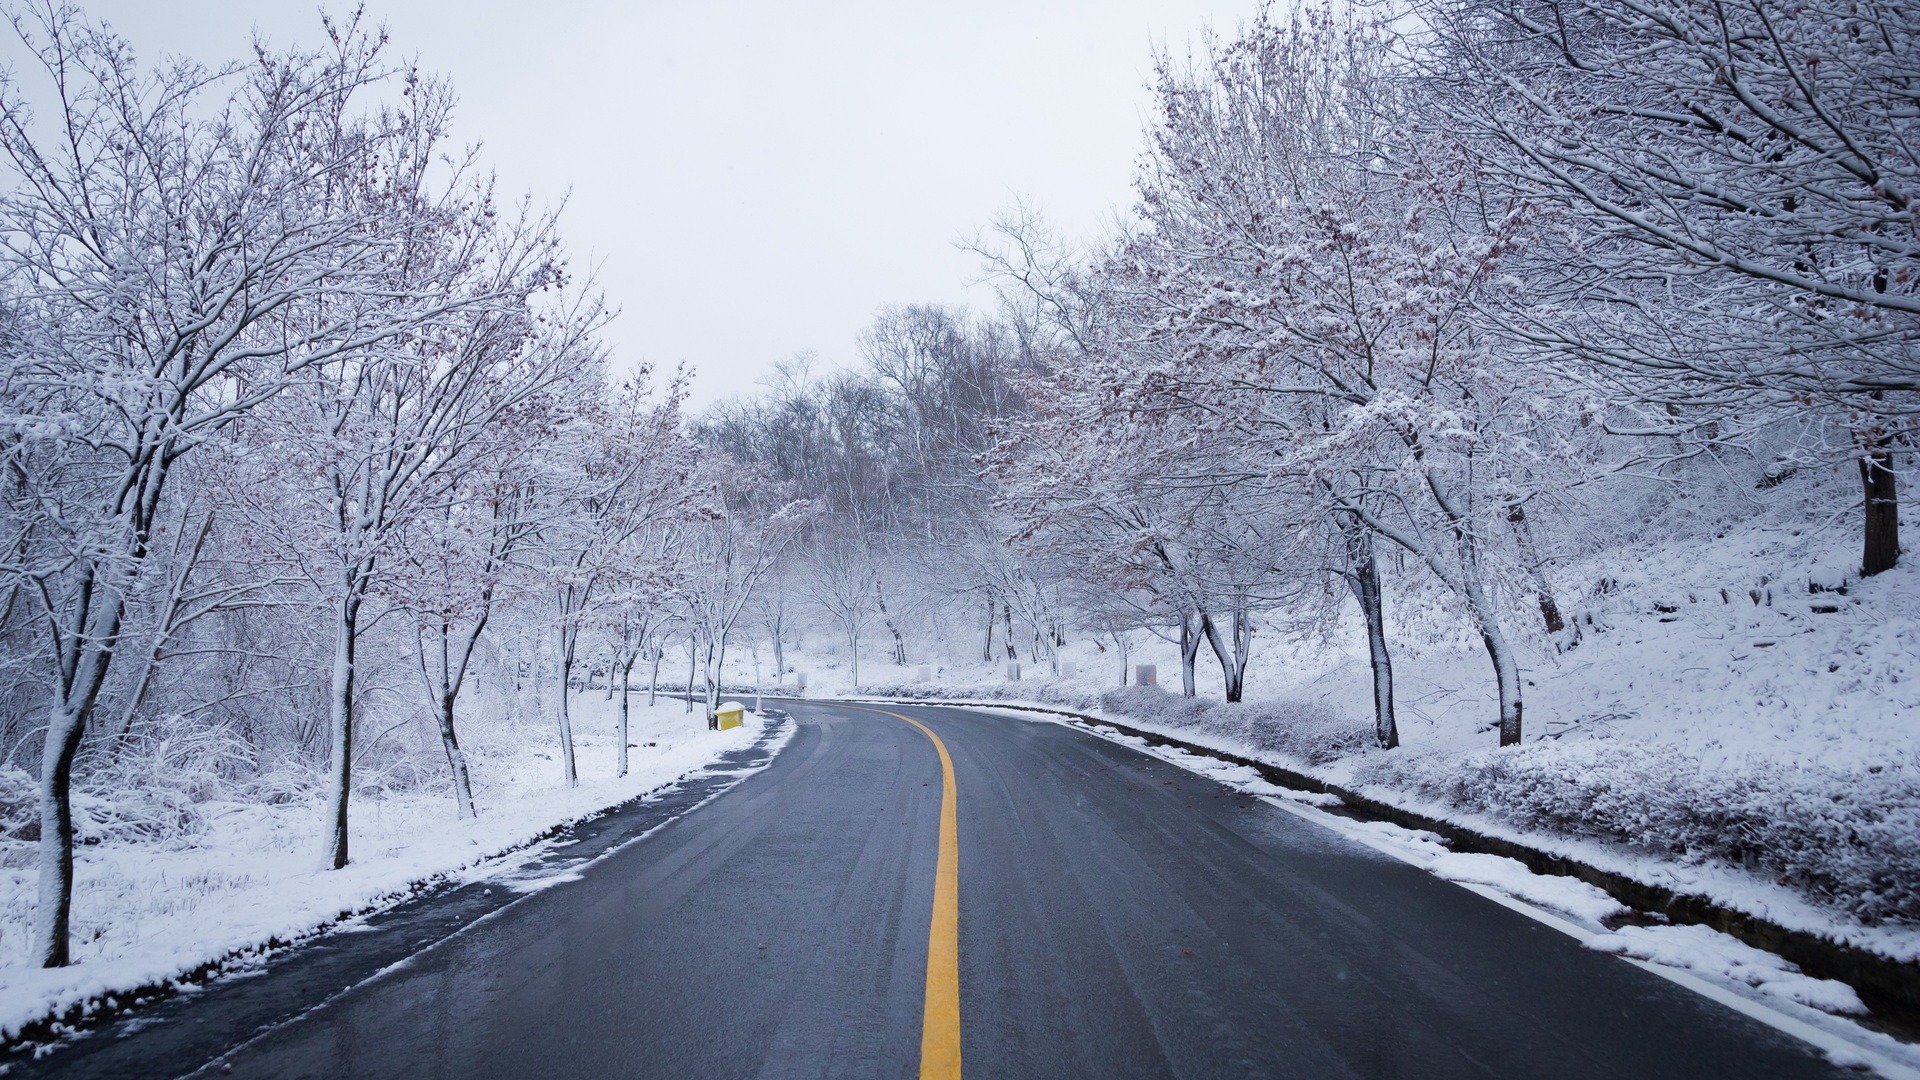 1920x1080 Snow Road Winter Ice Scenery 5k Laptop Full Hd